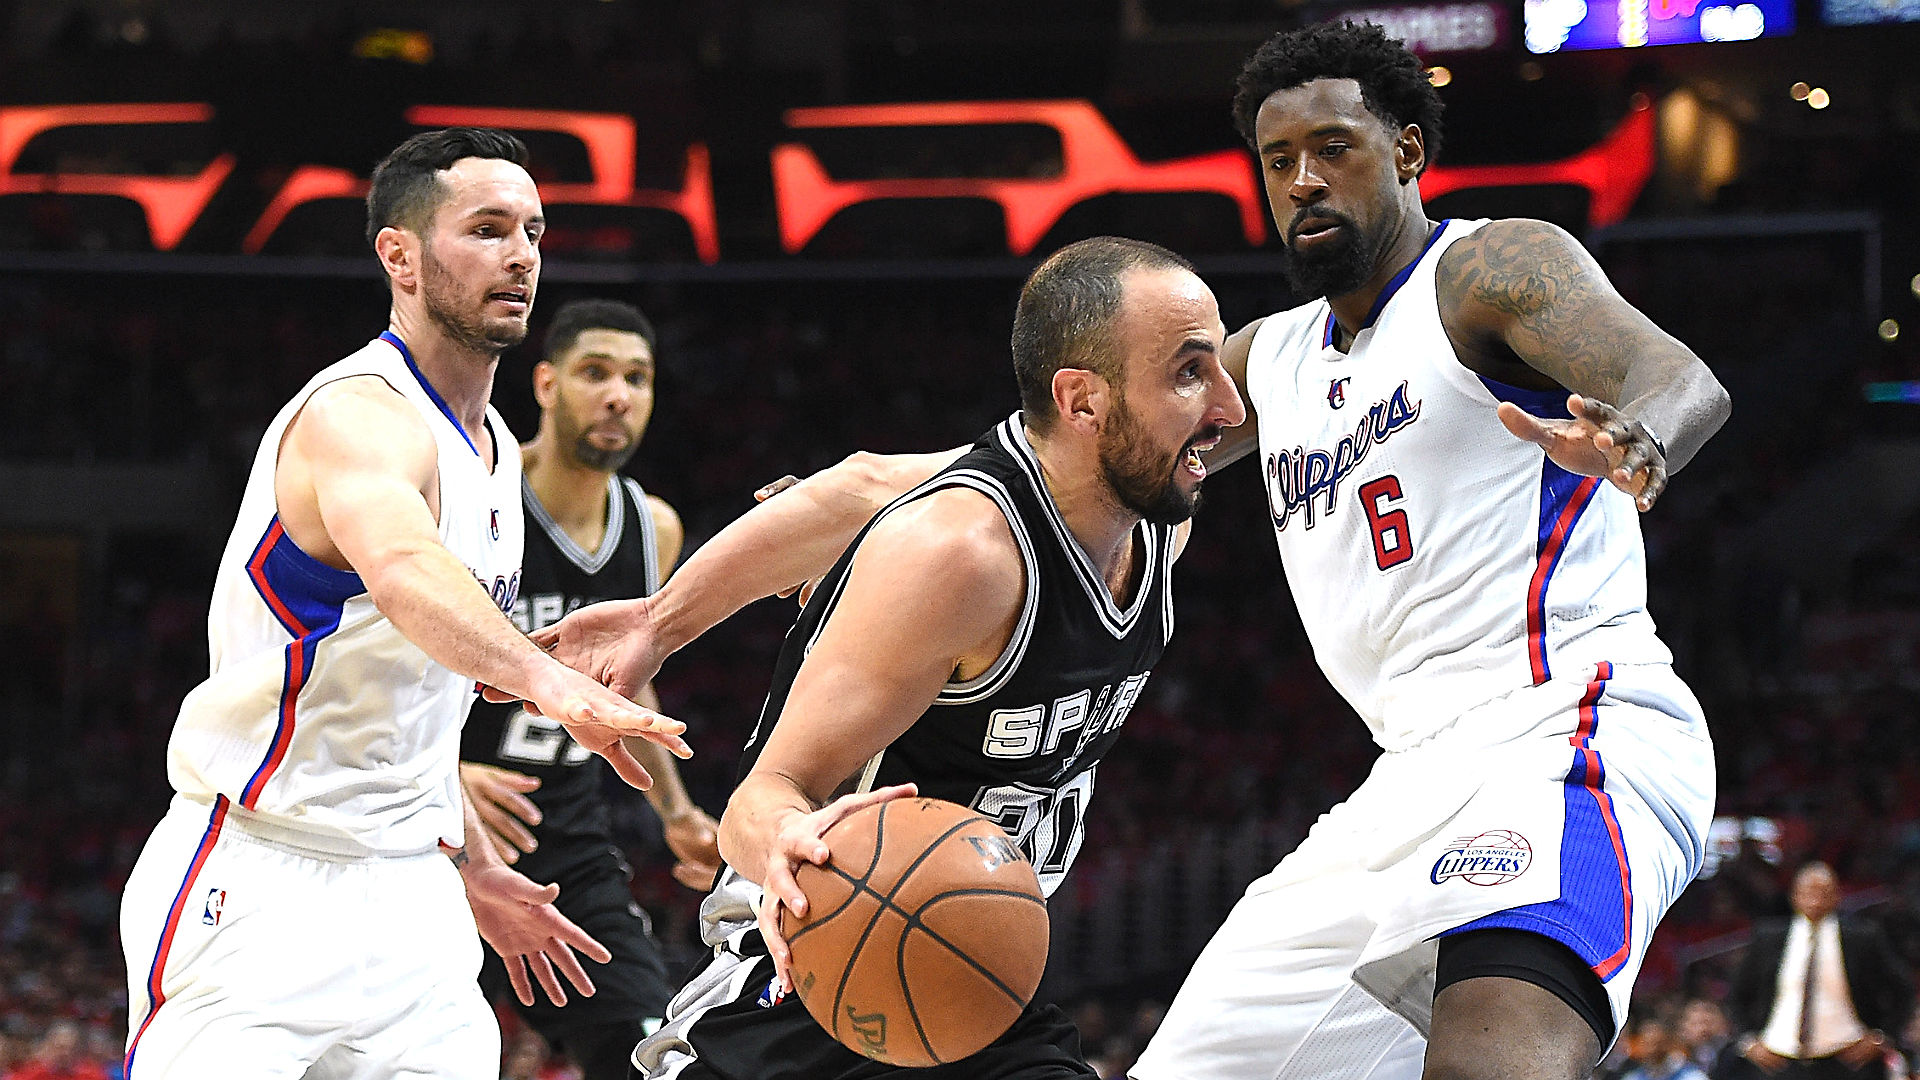 Friday's NBA playoff betting lines and picks – Clippers-Spurs deadlocked; Raptors, Mavs in desperation mode